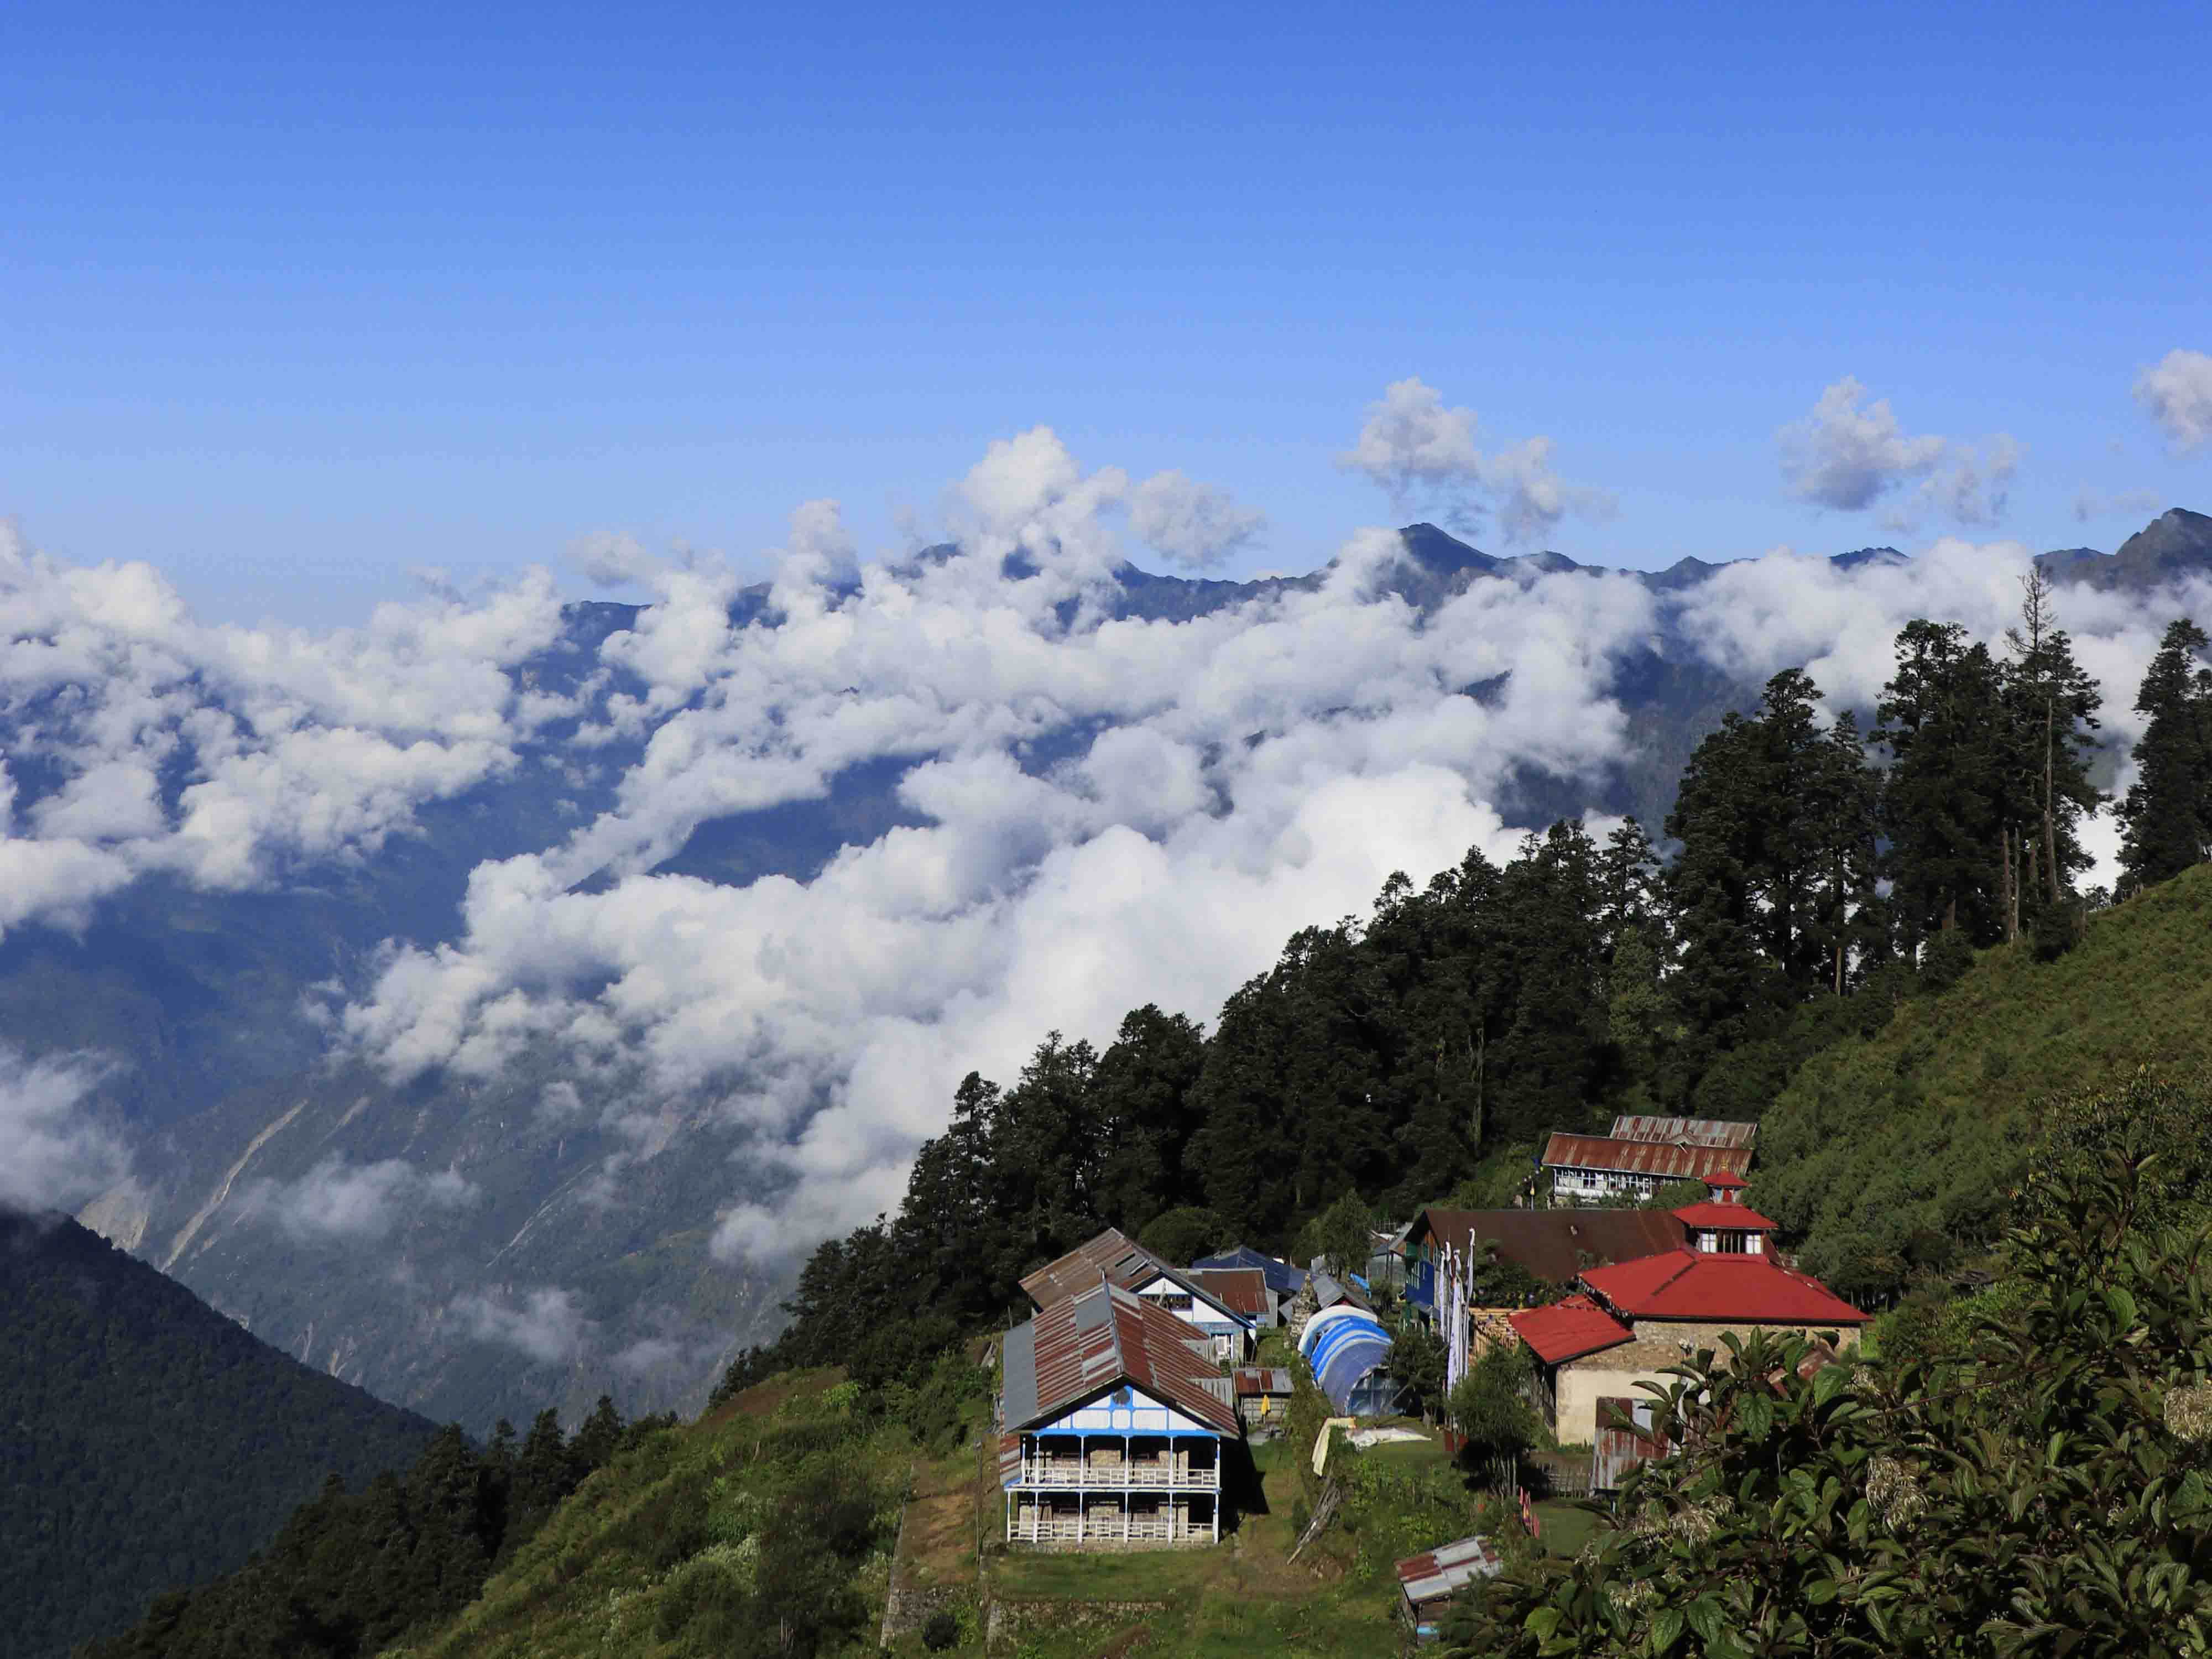 Trekking in Langtang: To Conquer the Unconquered